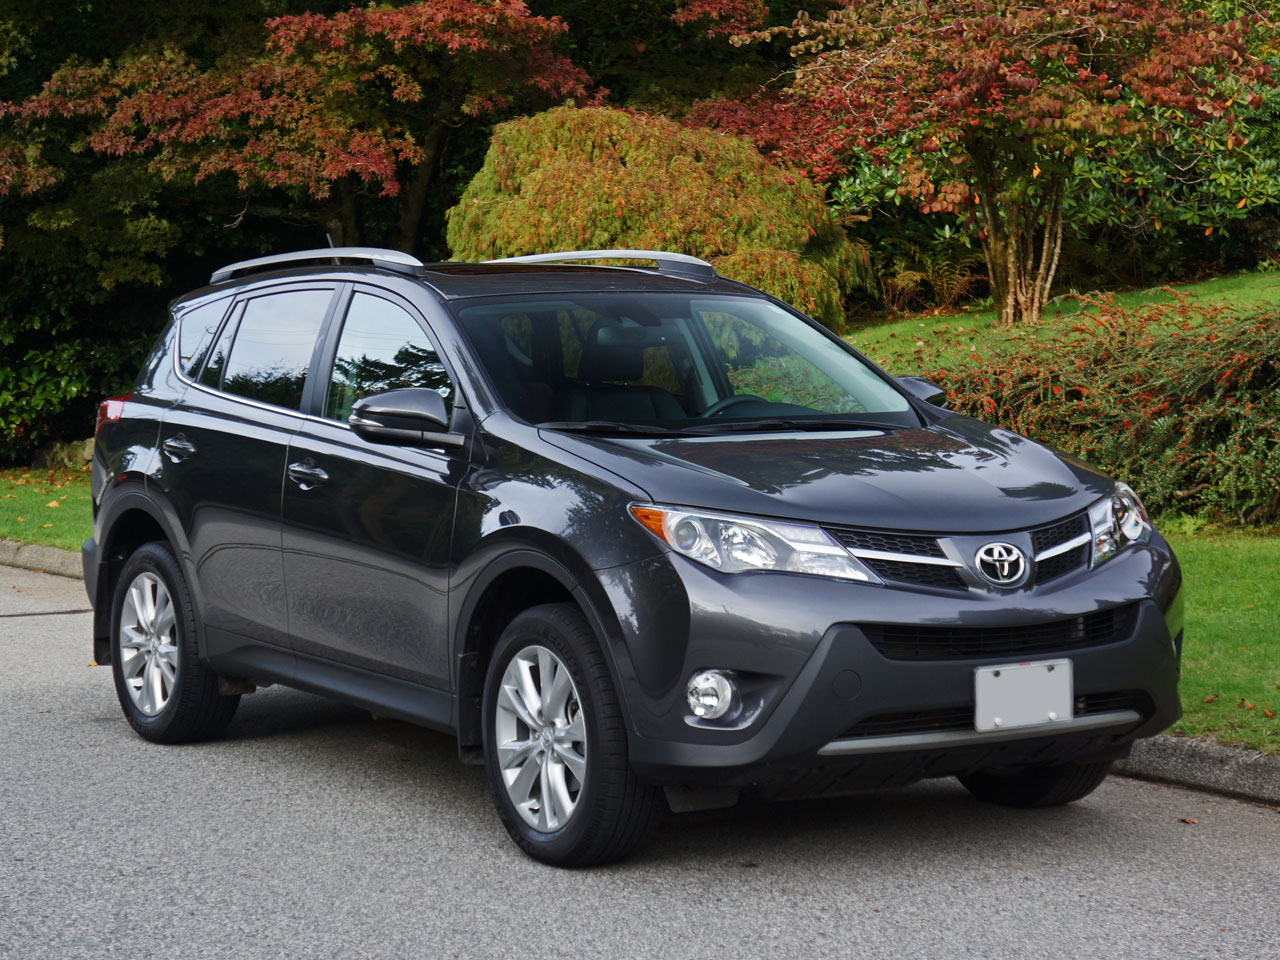 2015 toyota rav4 awd limited road test review carcostcanada. Black Bedroom Furniture Sets. Home Design Ideas